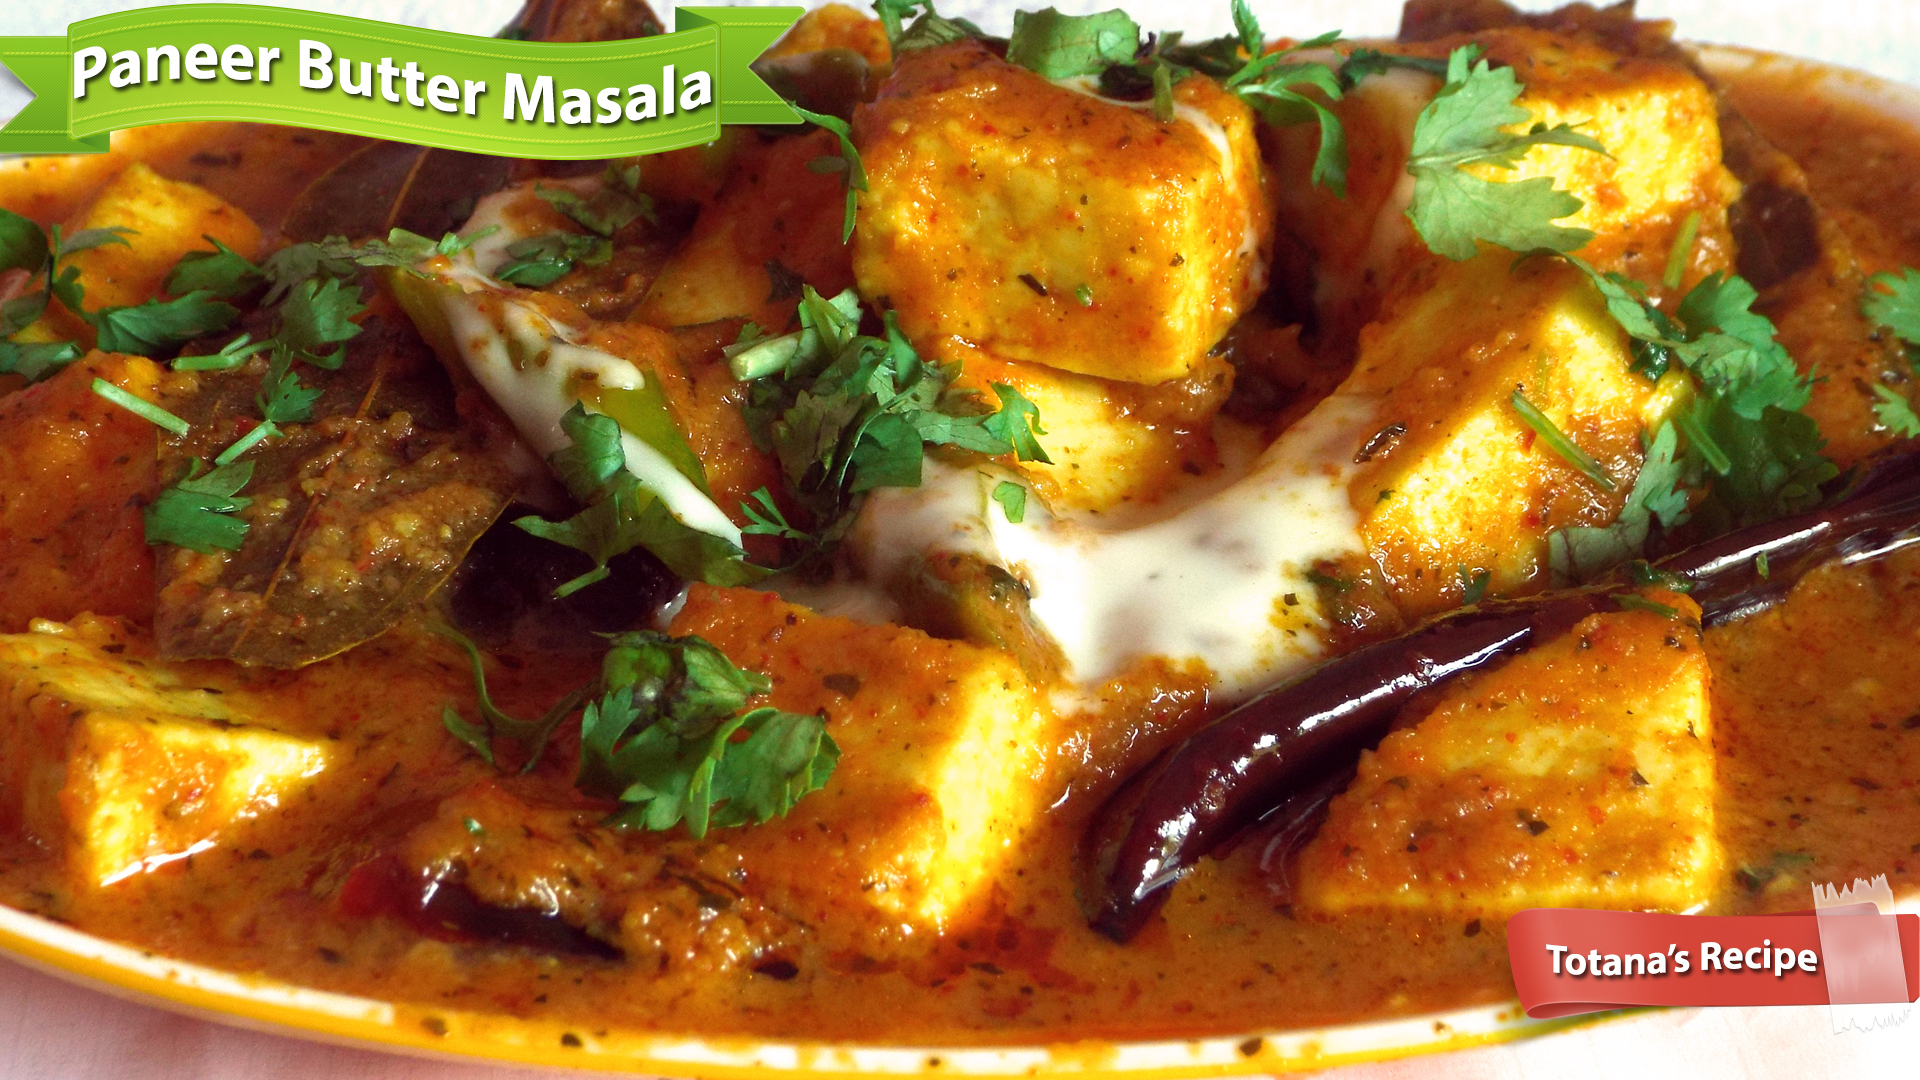 How to make Paneer Butter Masala Recipe? Bengali Restaurant Style at home